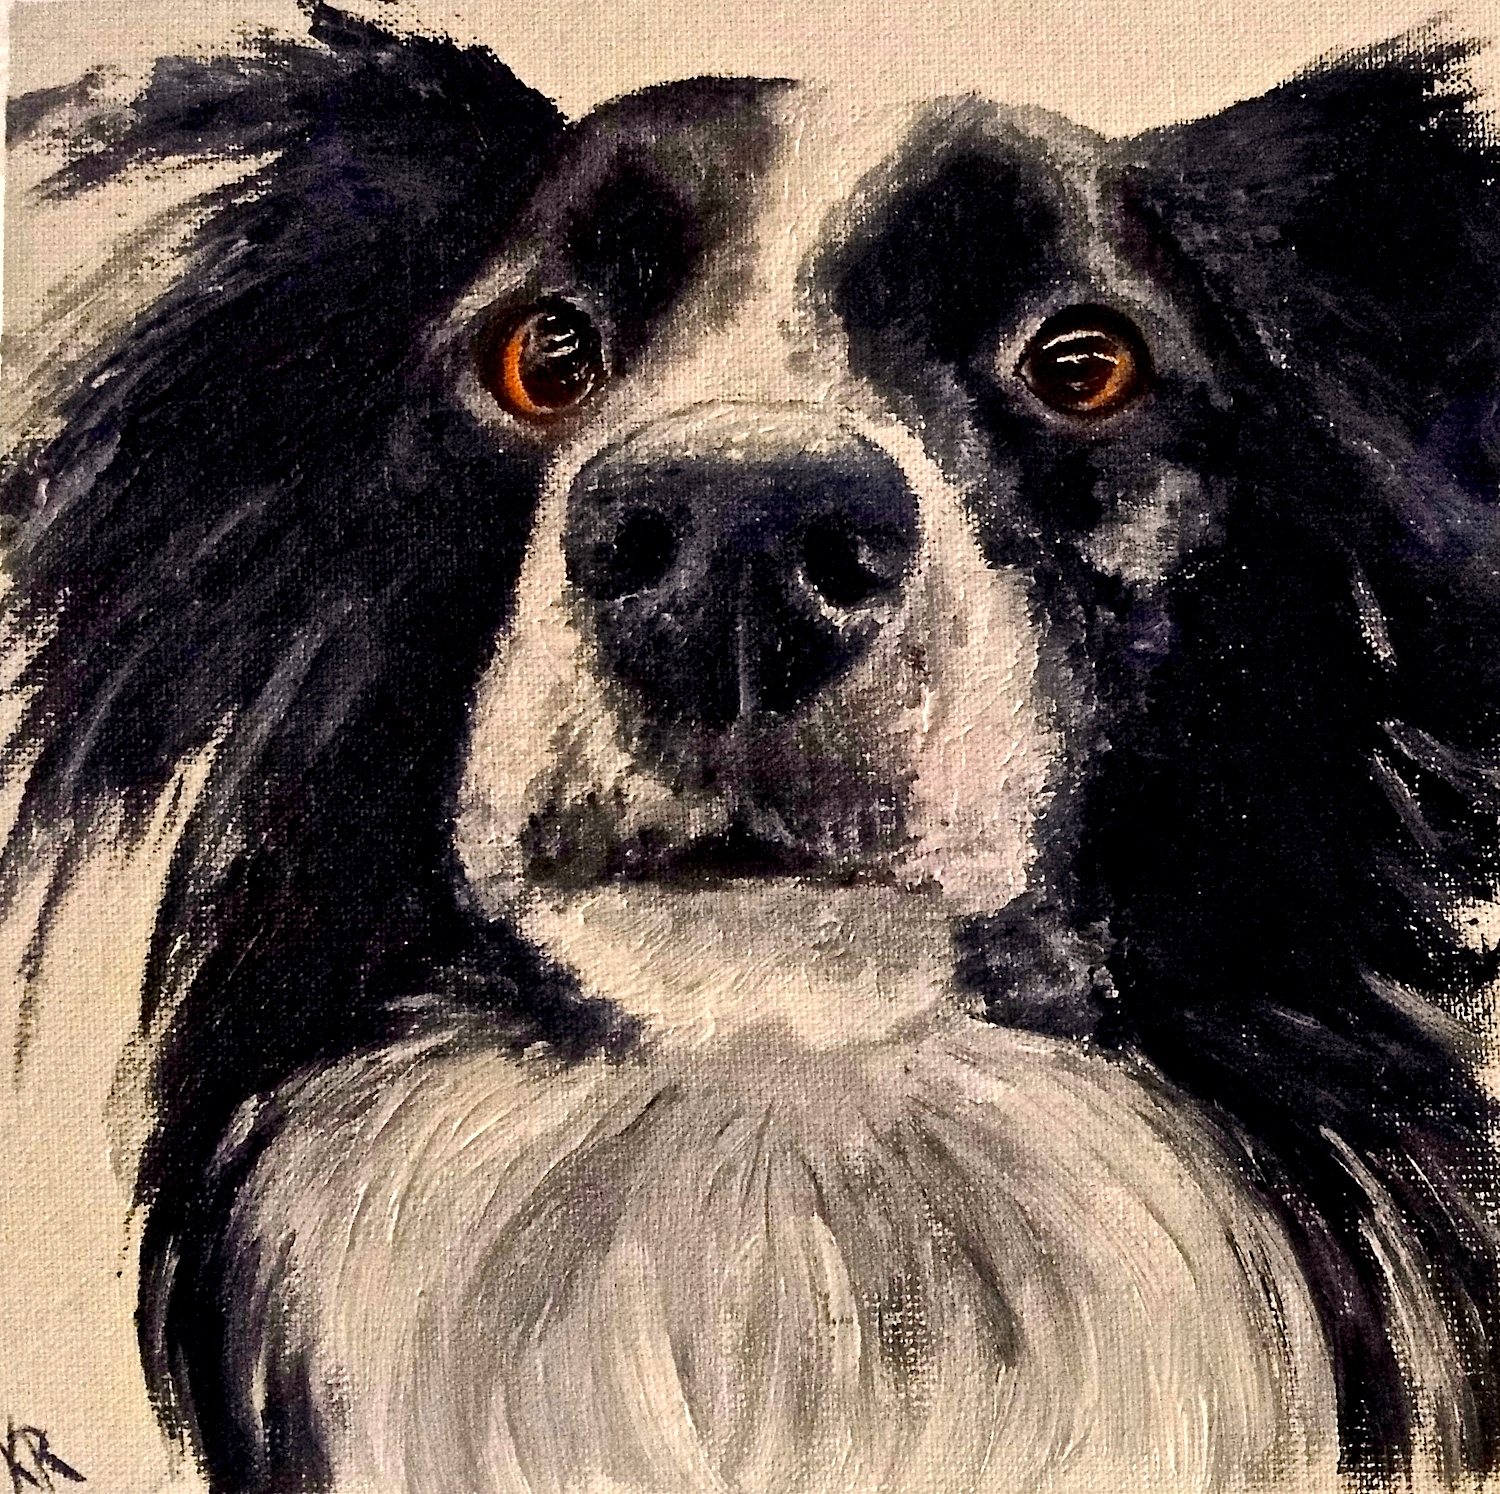 Portrait of a dog in oils, a collie cross, mixing chromatic blacks, a pet portrait by karen